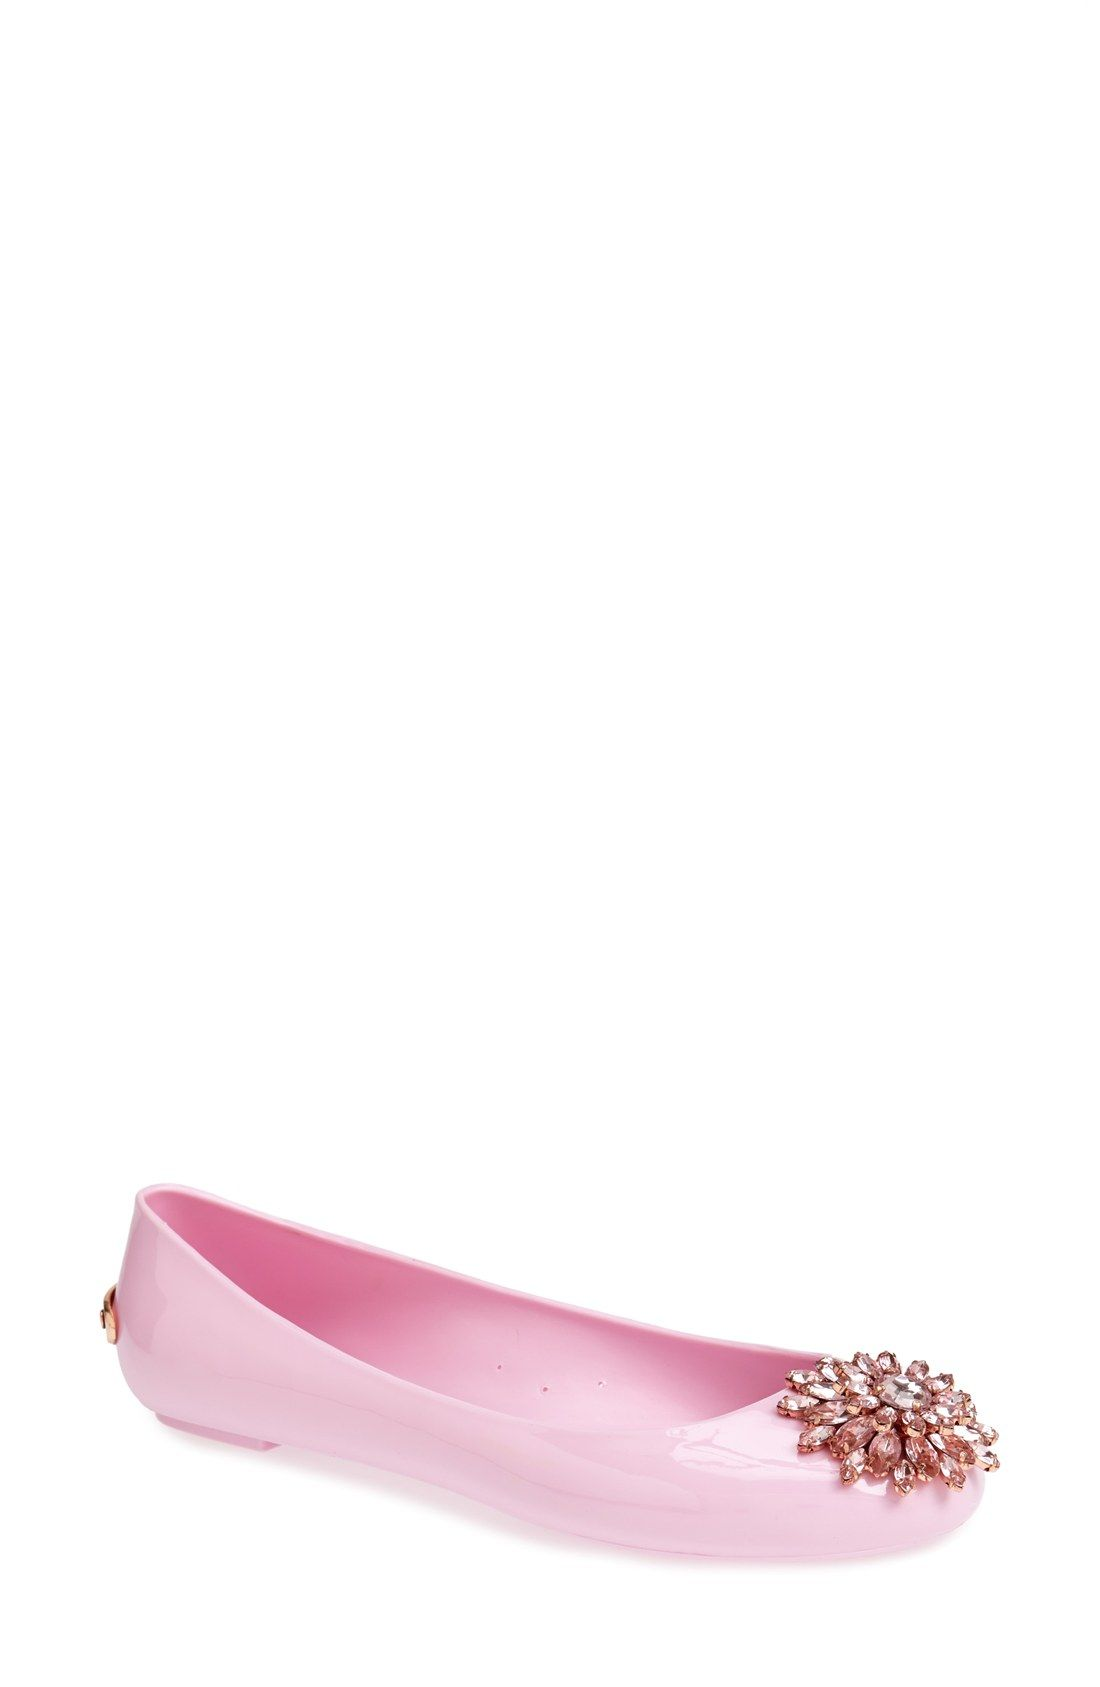 b3bcd660a Glittering pink flats make for a fun statement shoe. Ted baker ...